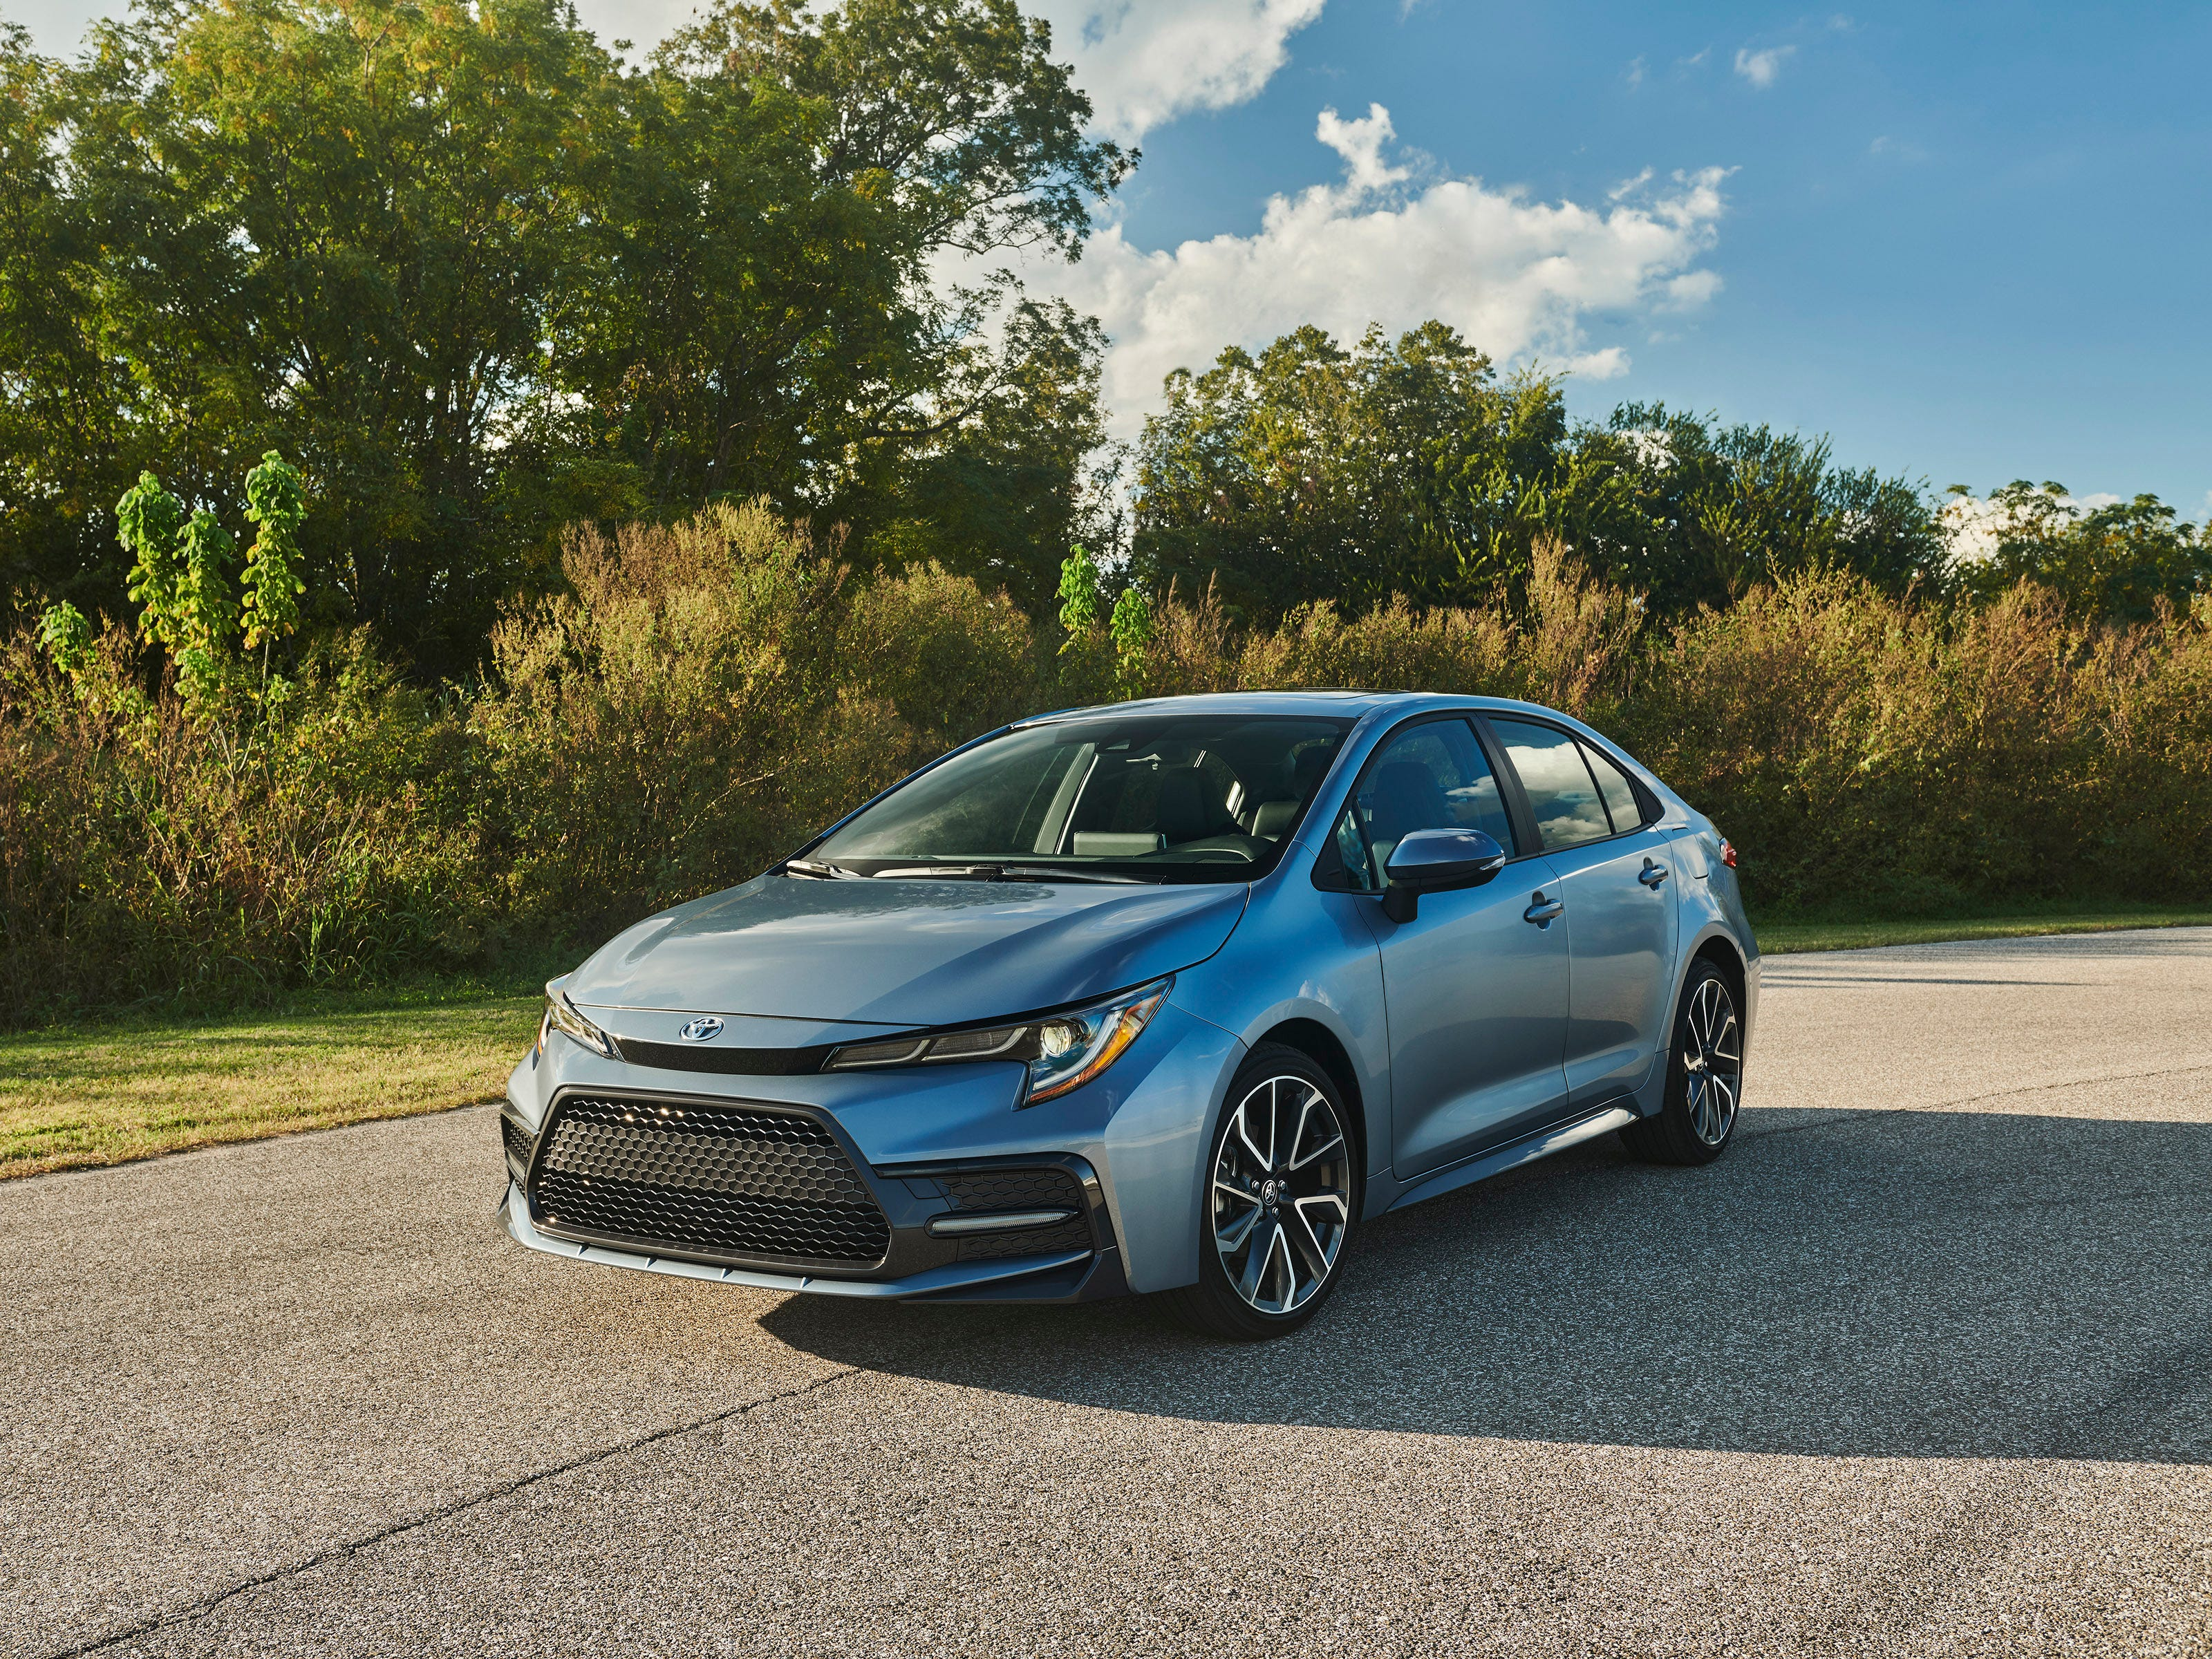 Toyota Corolla redesigned: More power, better fuel economy